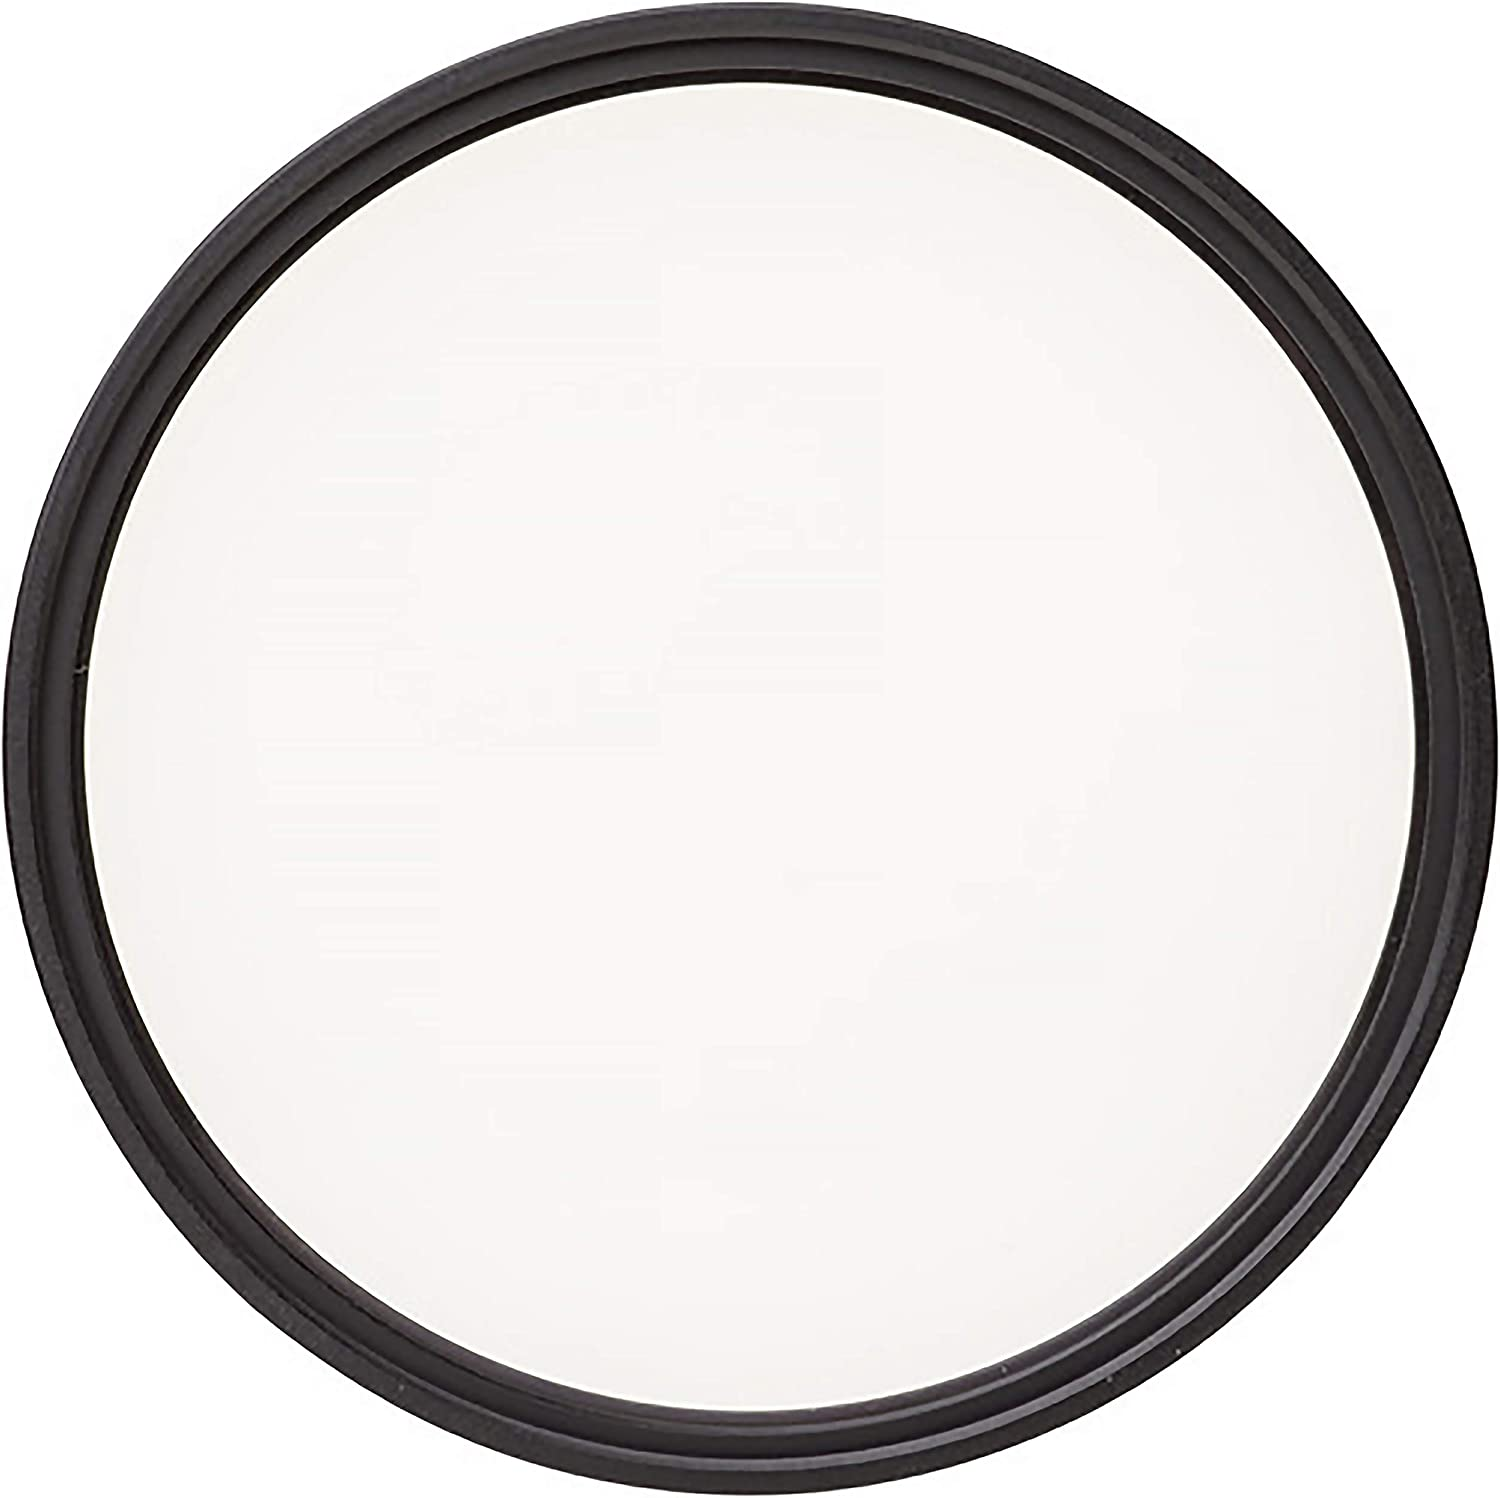 with specialty Schott glass in floating brass ring Heliopan 77mm UV Filter 707701